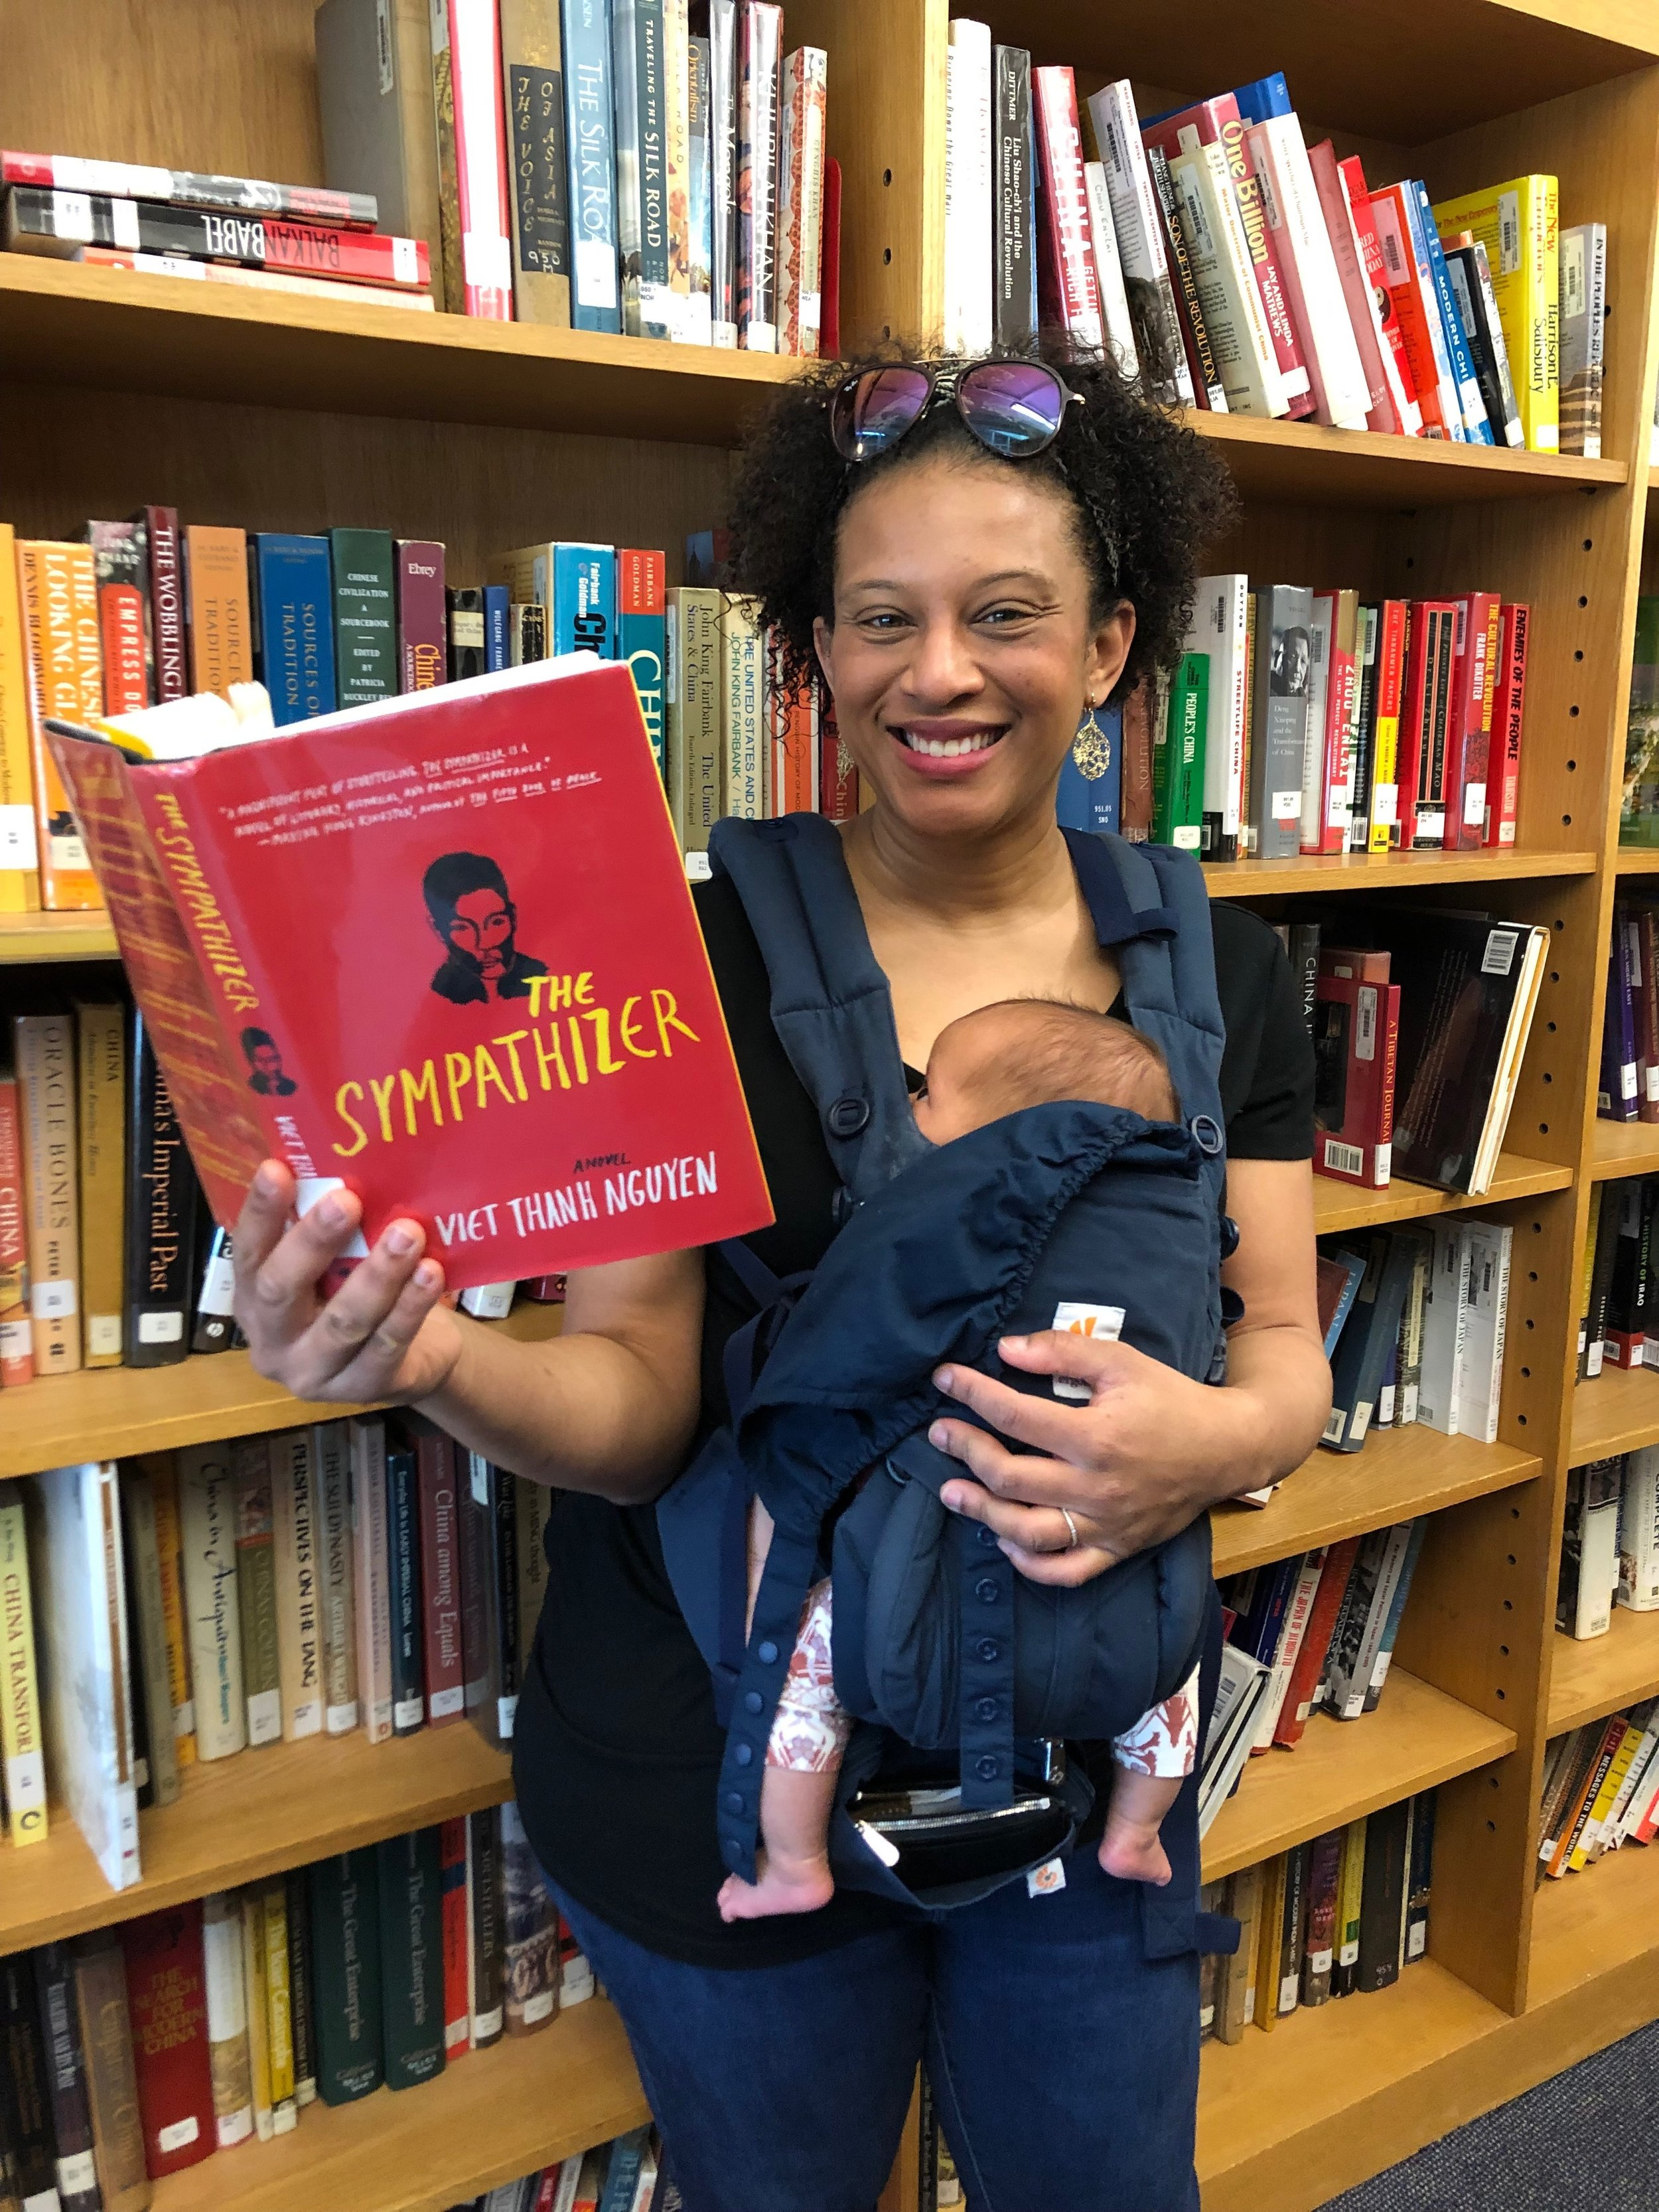 Bite-Sized Book Club - A comforting community for new parents where the reading is short and the conversation joyfully disjointed.